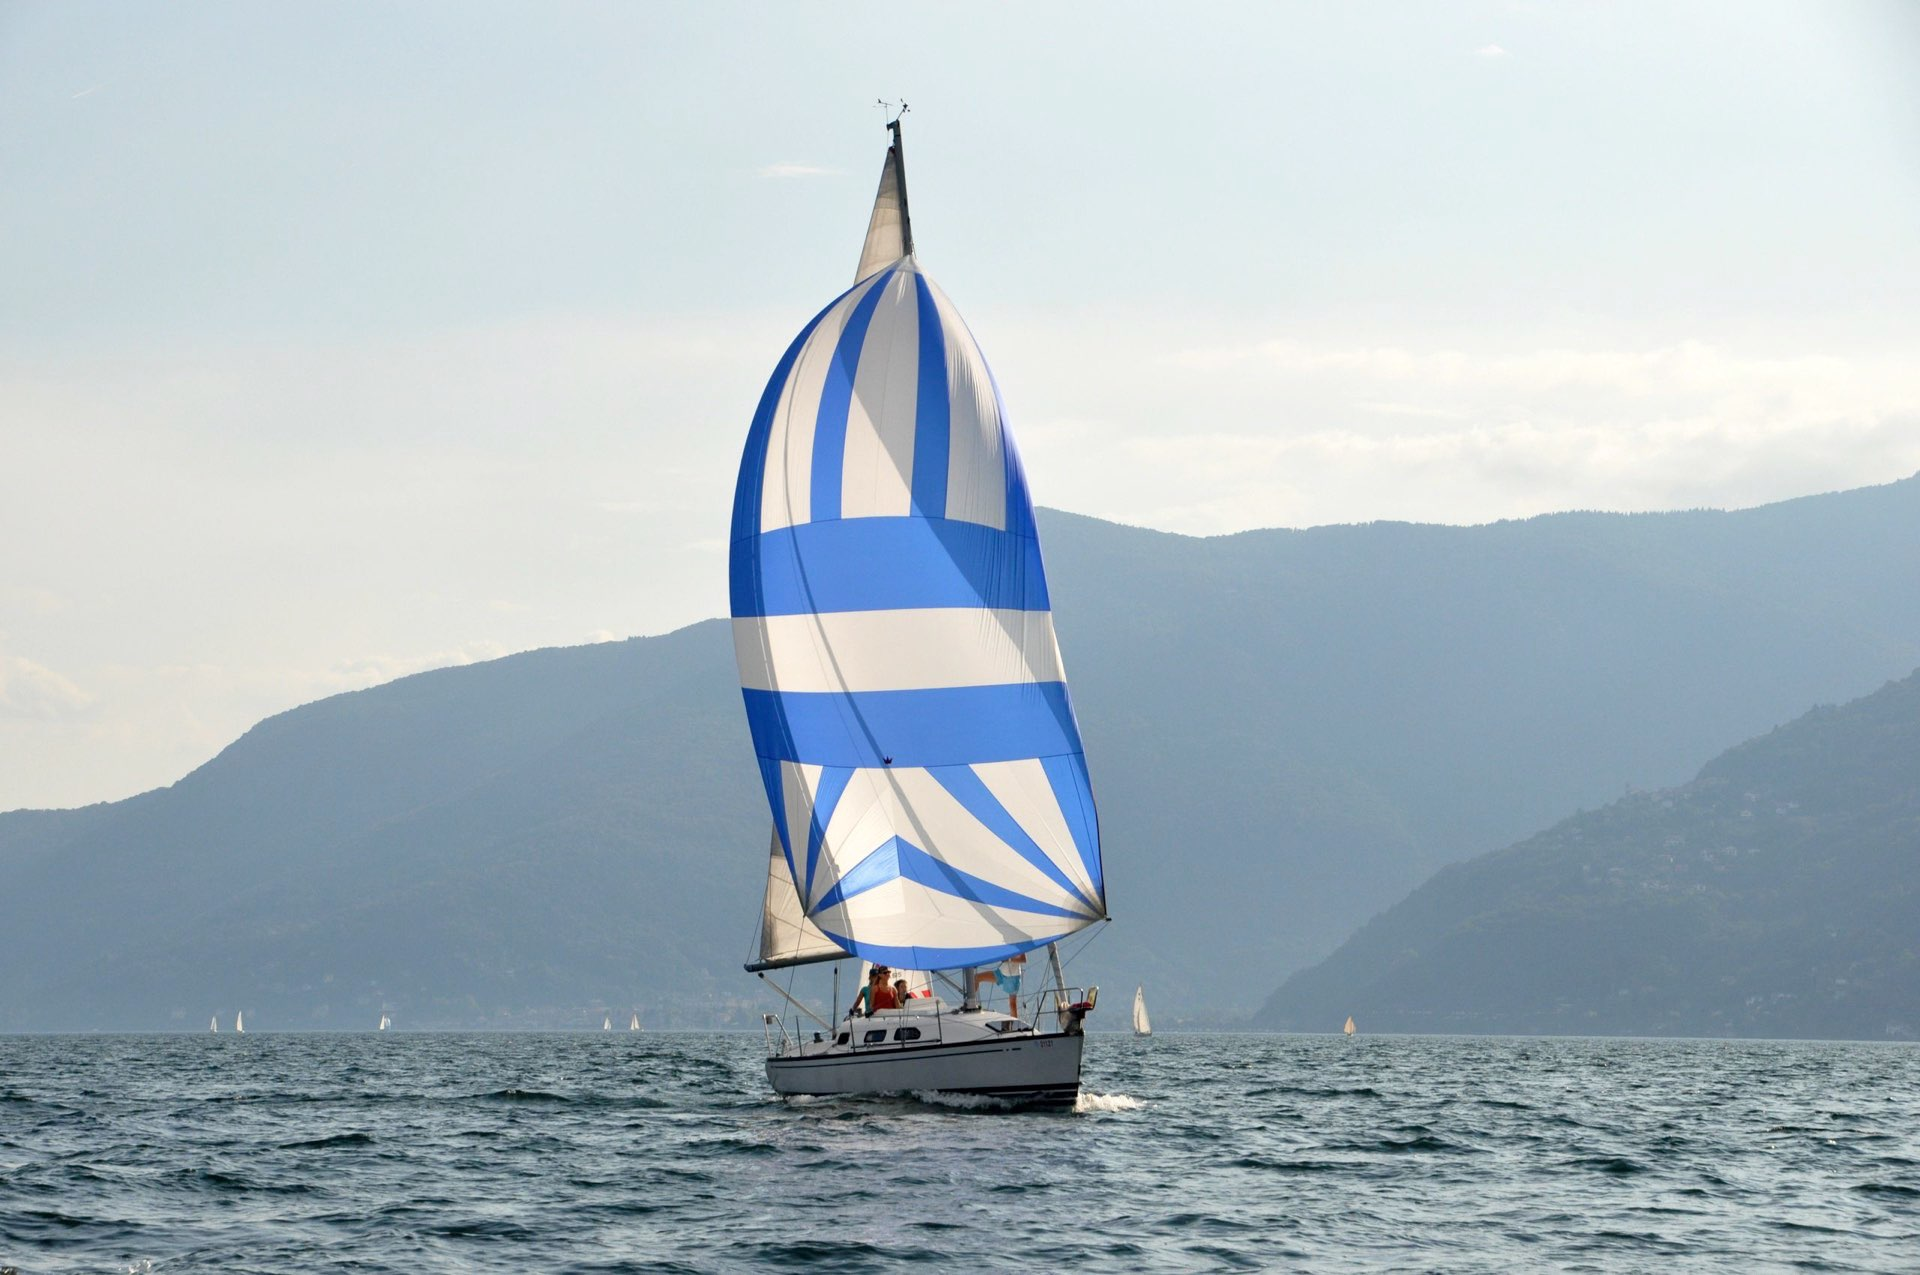 Regata Patriziale Ascona Dreaming Sailandream girlsforsail